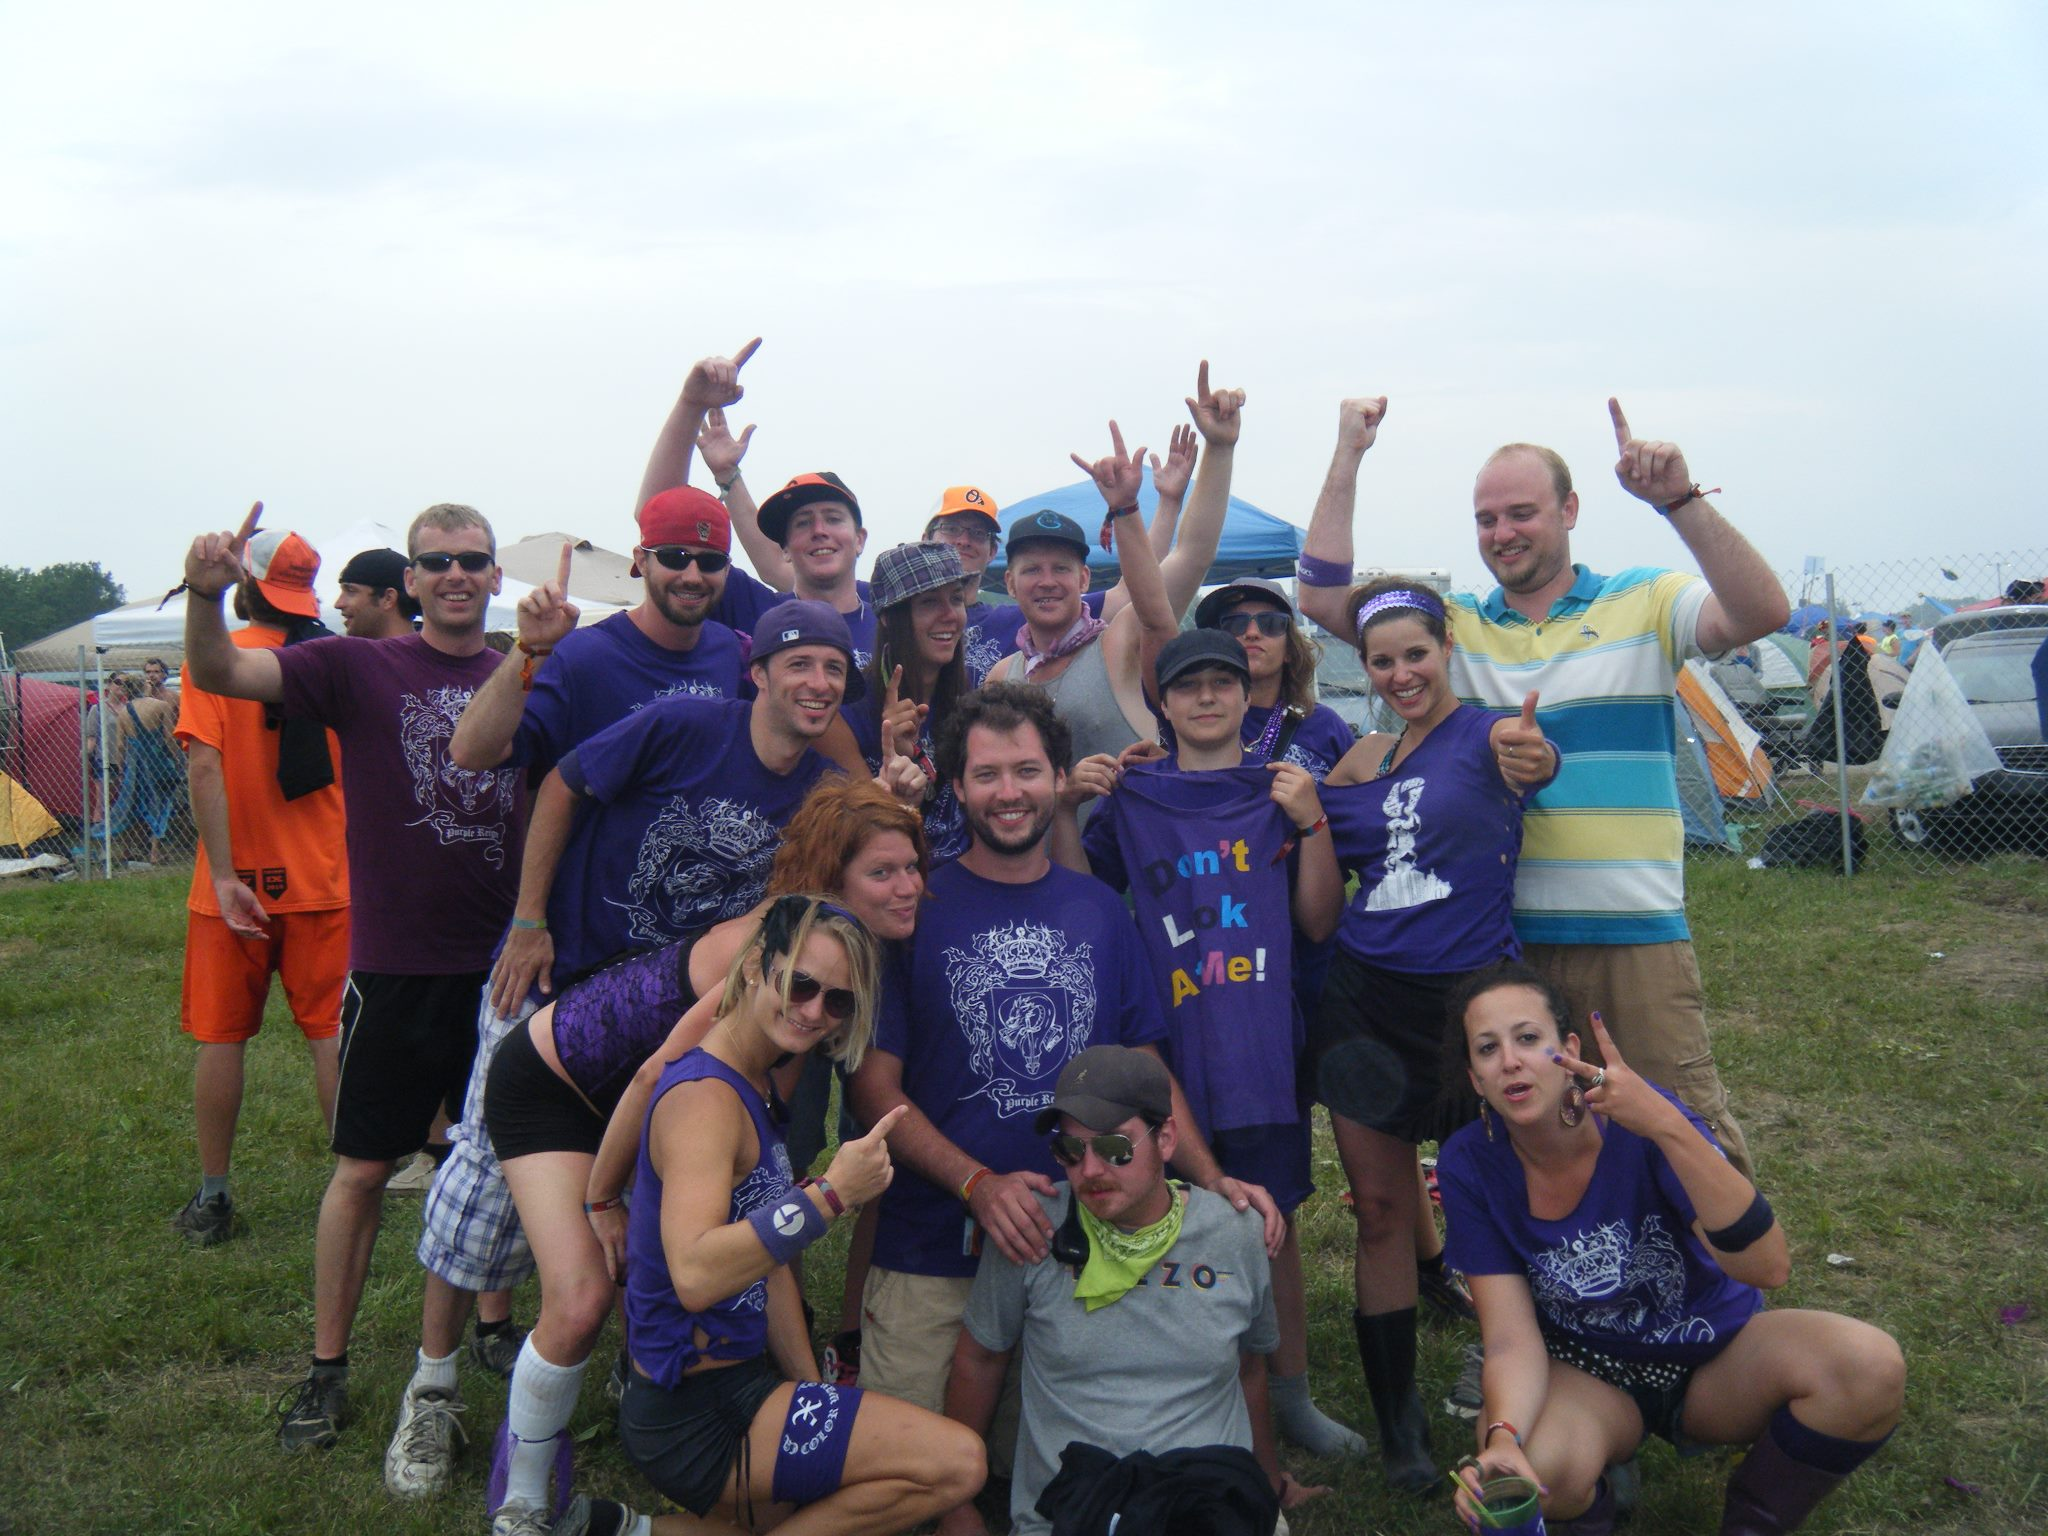 AND ANOTHER VICTORY PICTURE